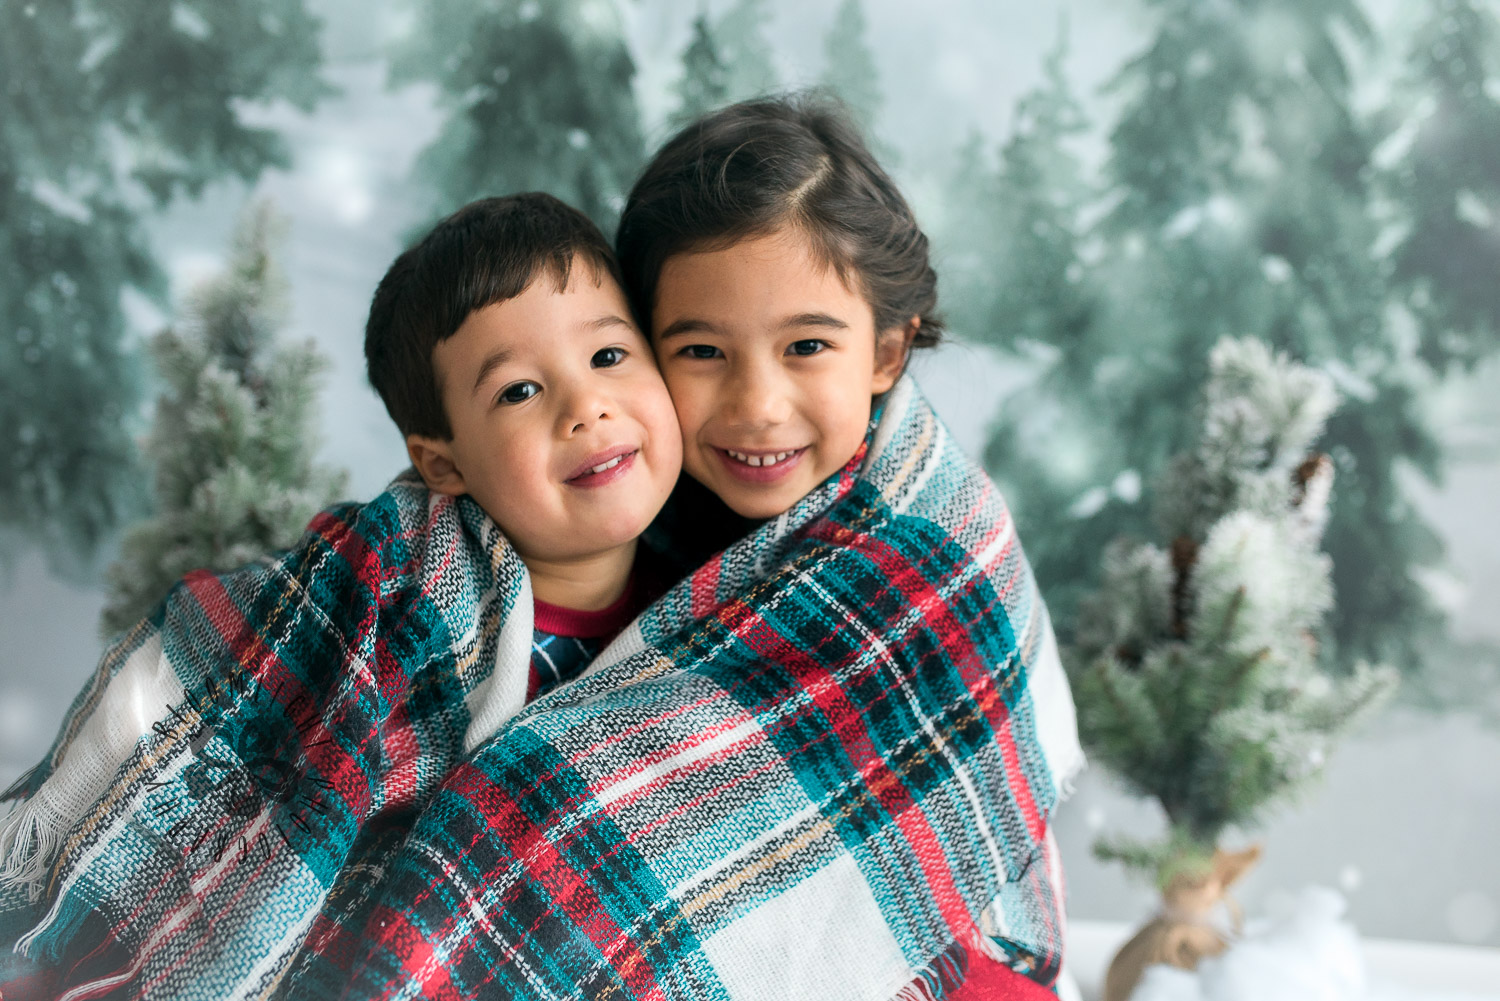 Siblings photo wrapped with a Christmas color blanket